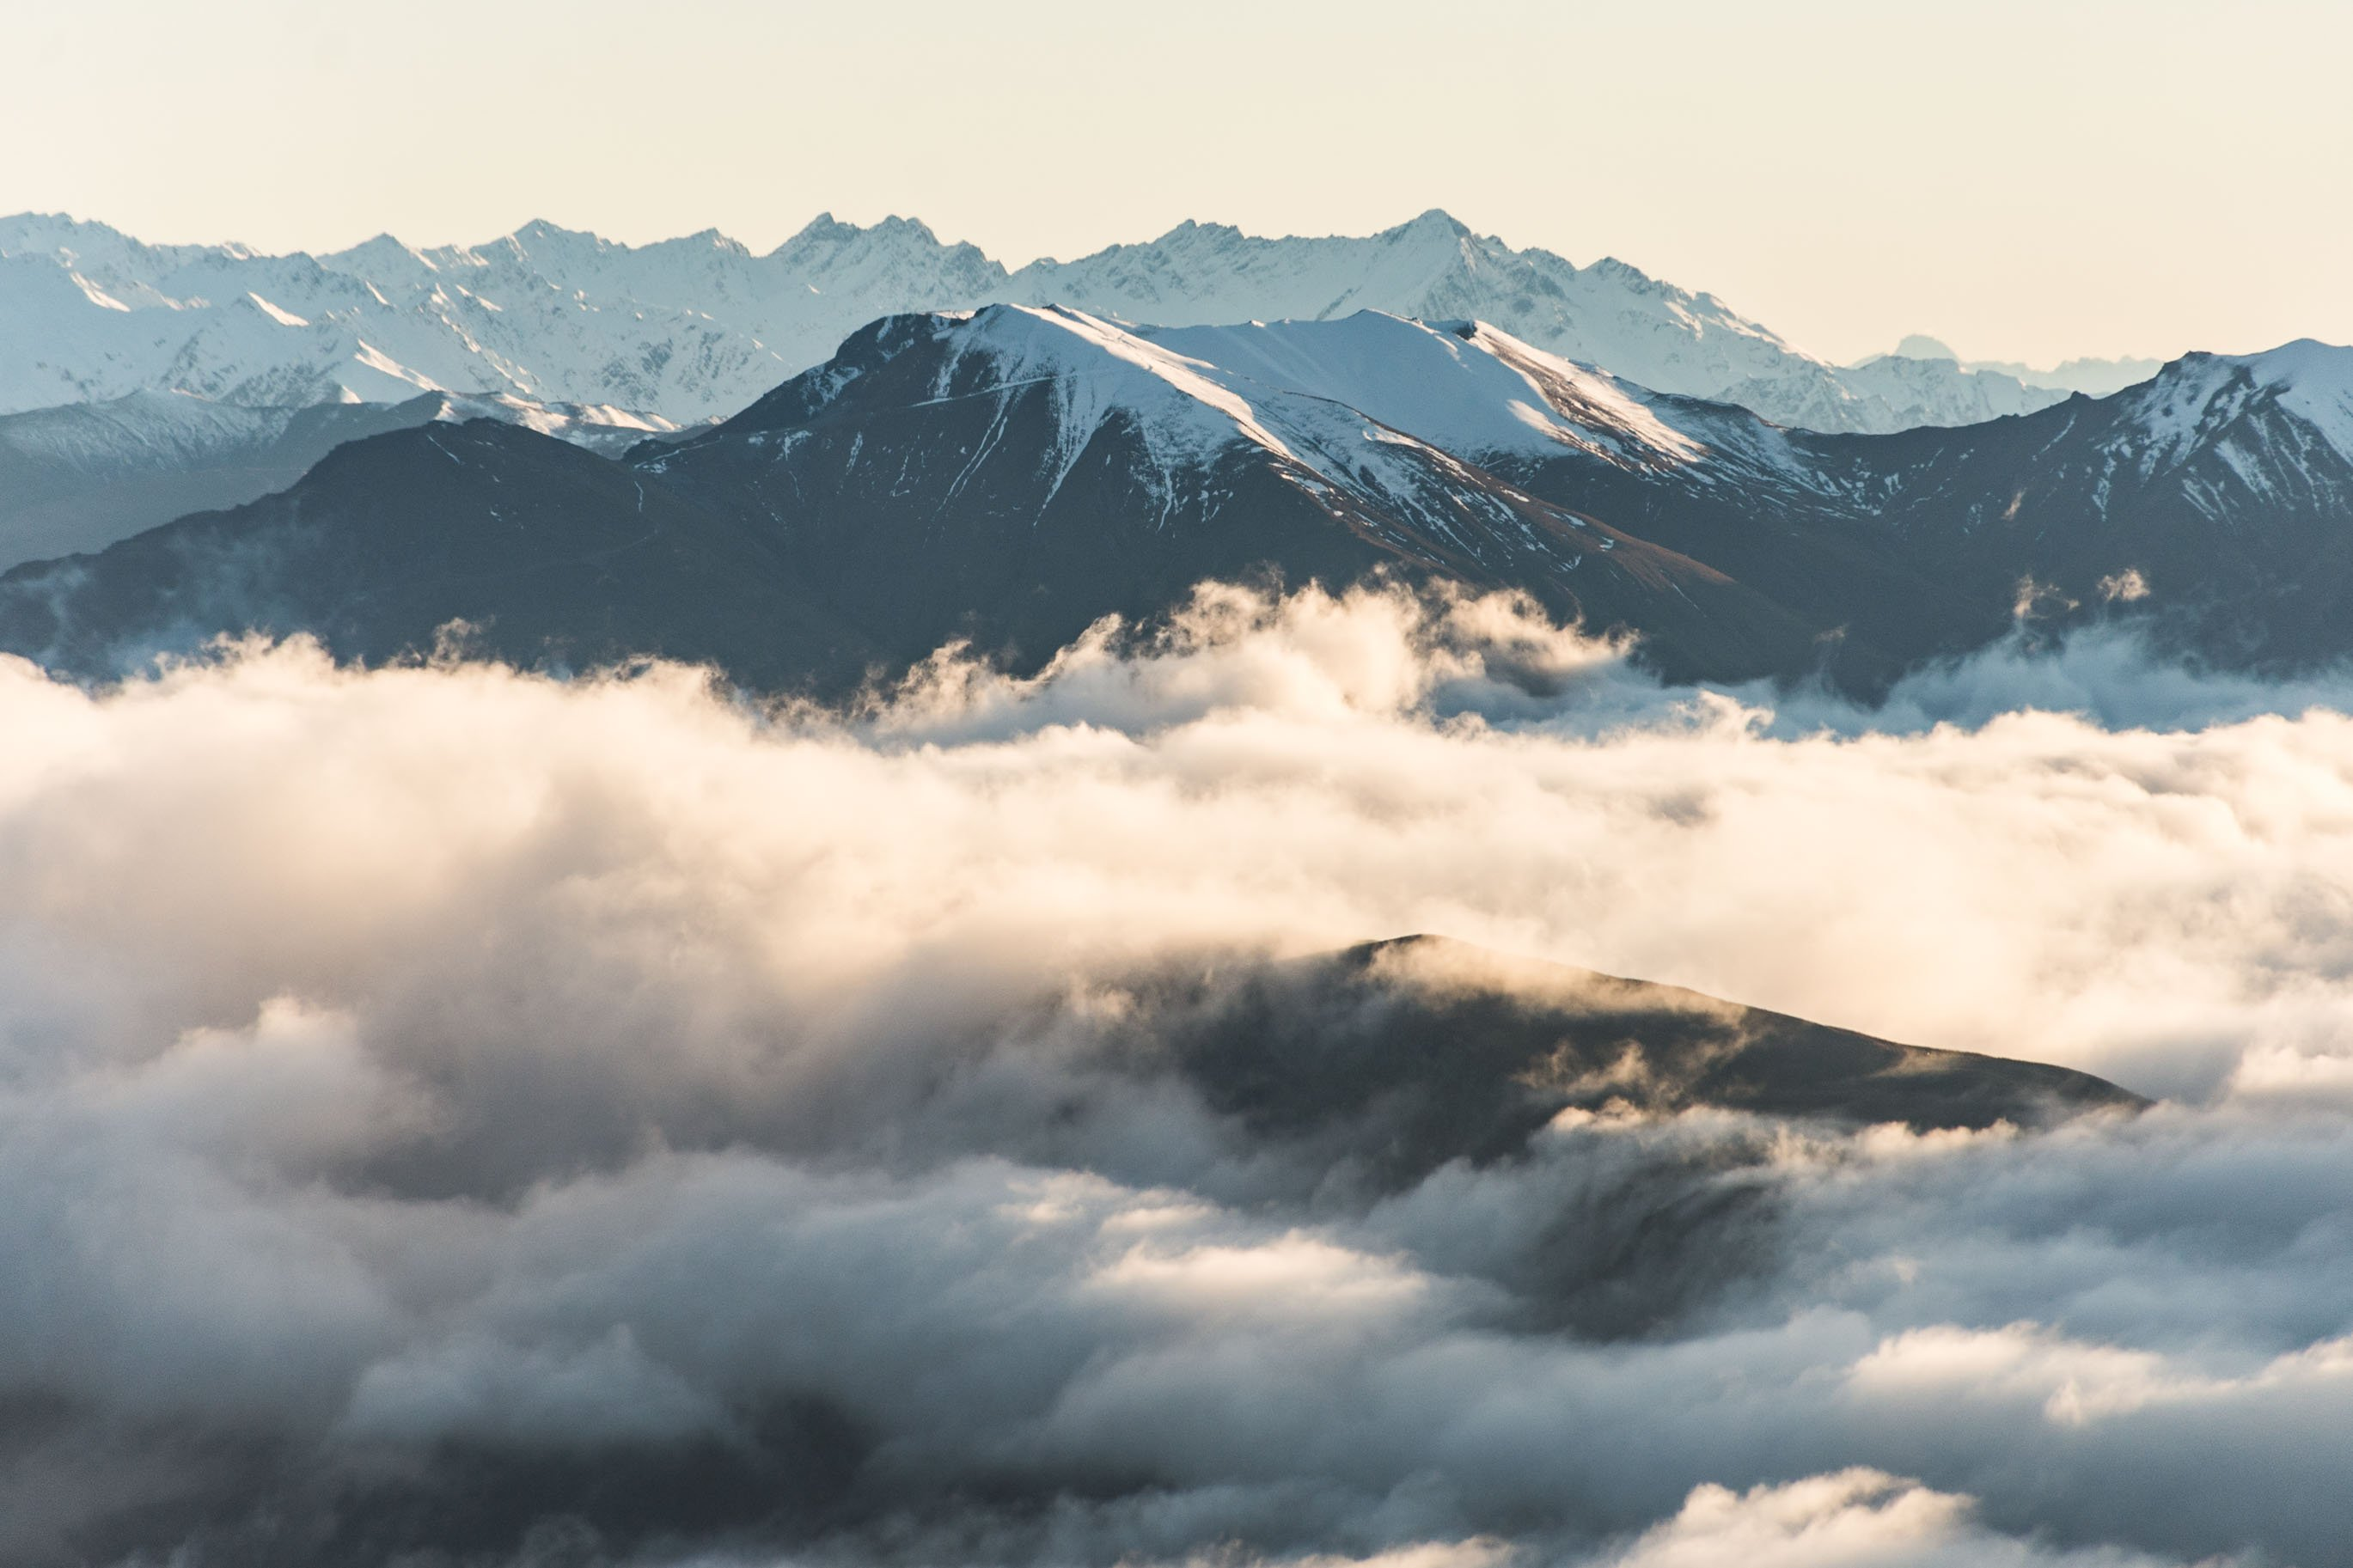 roys peak track takes you above the clouds